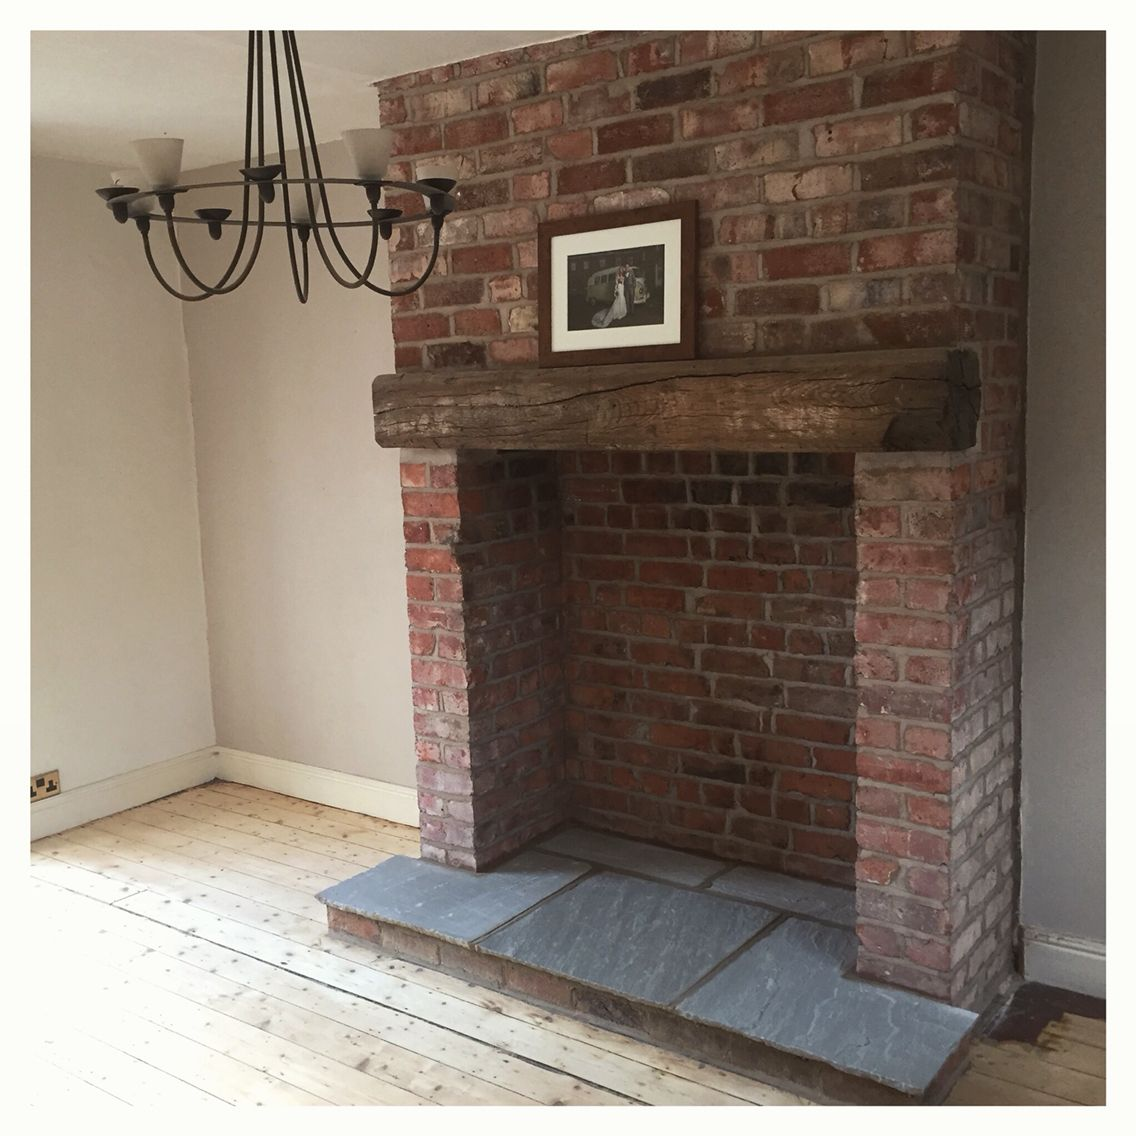 Brick fireplace and Exposed brick